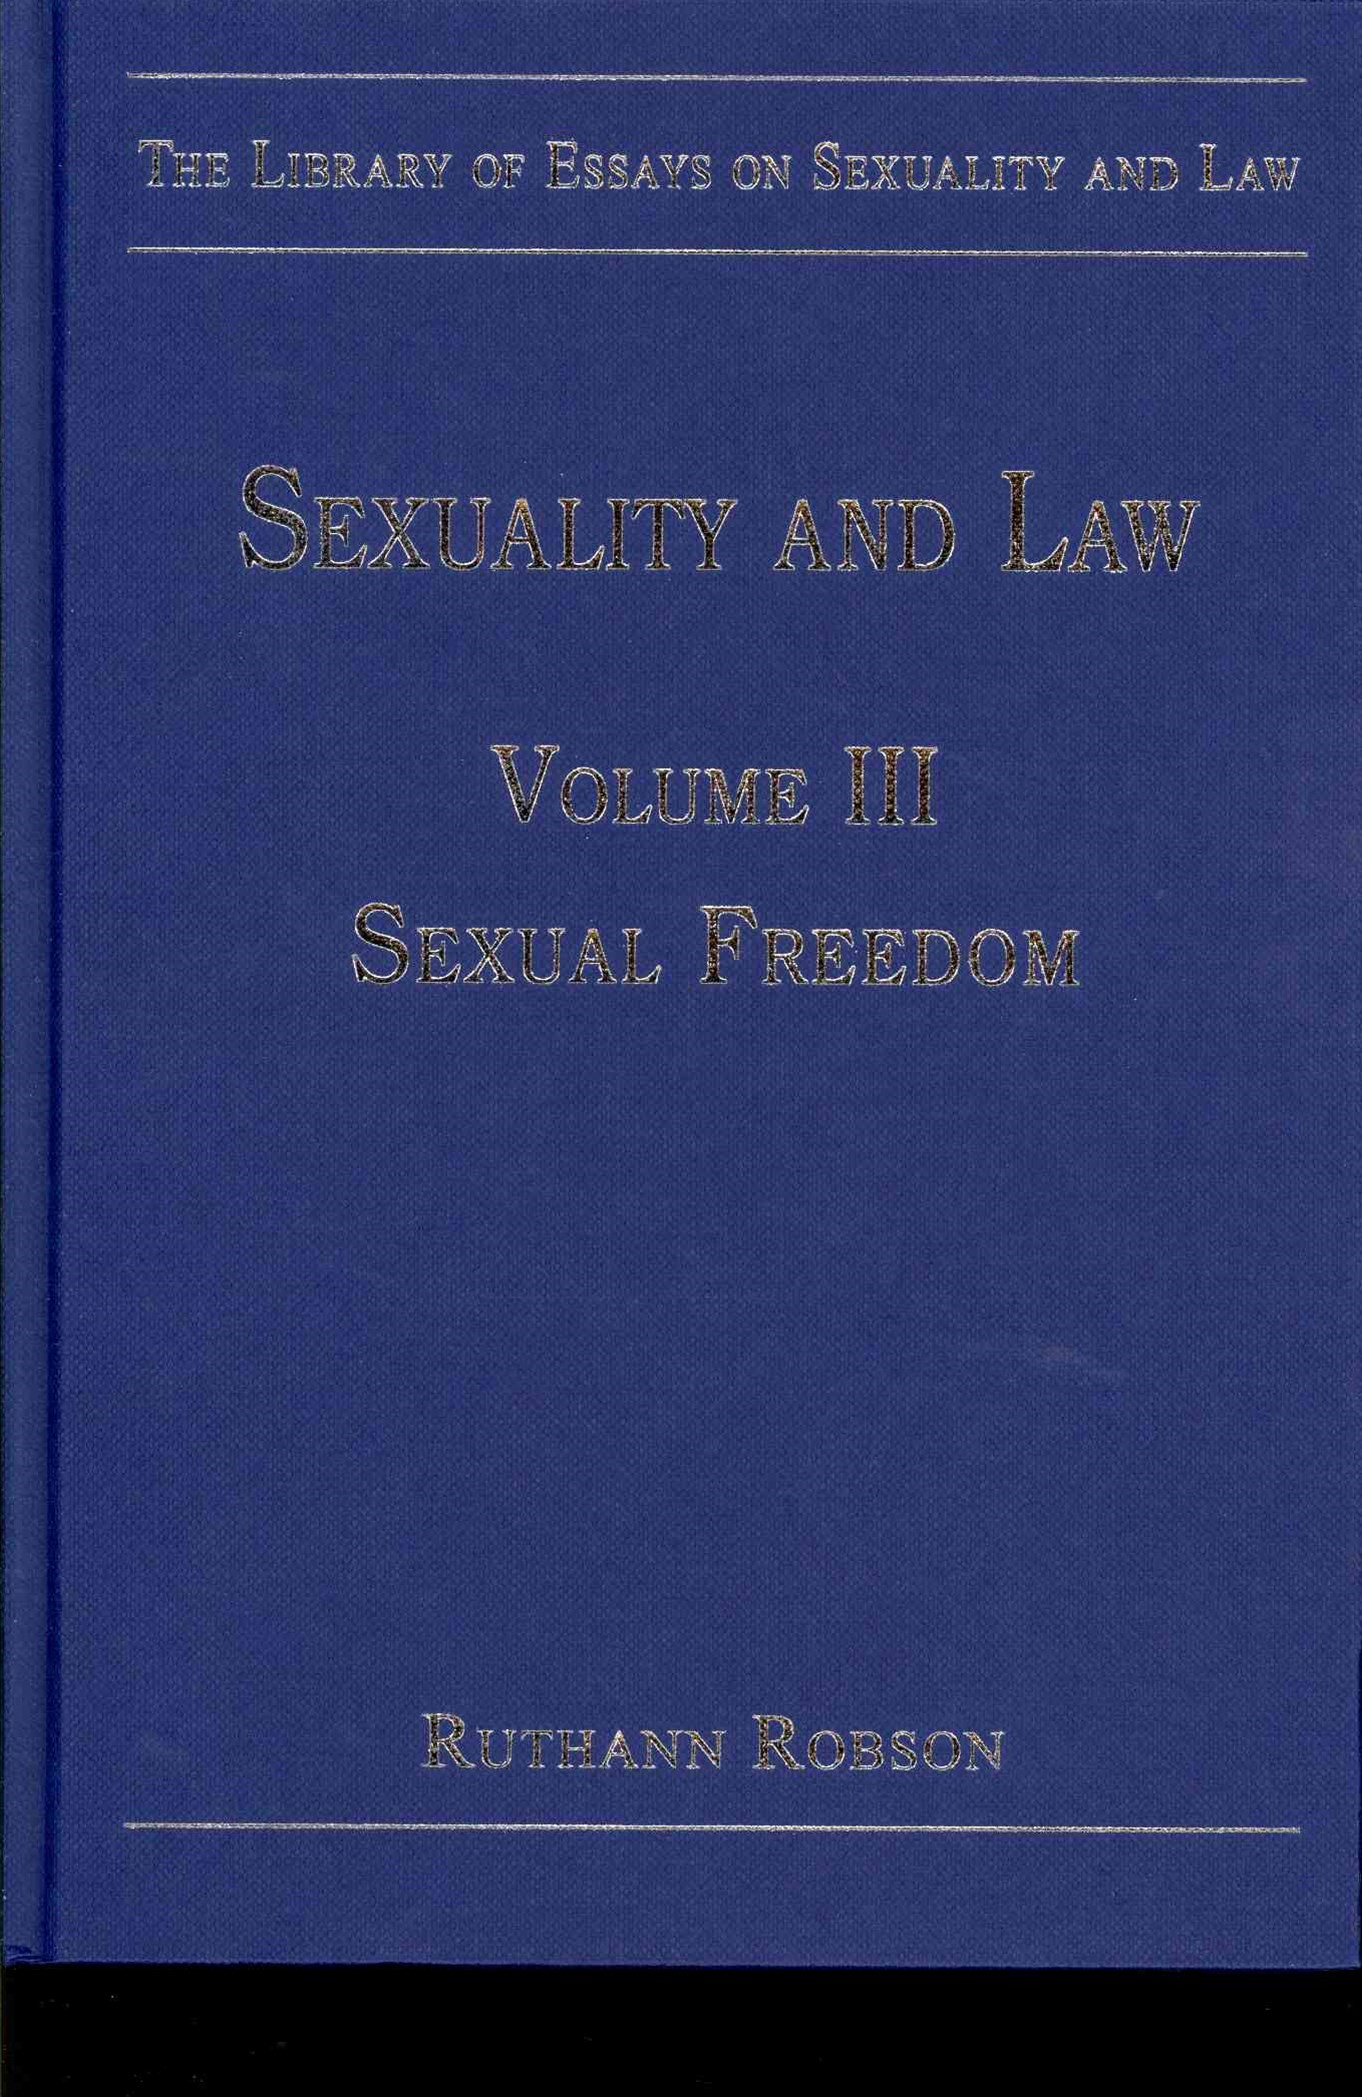 Sexuality and Law: Sexual Freedom